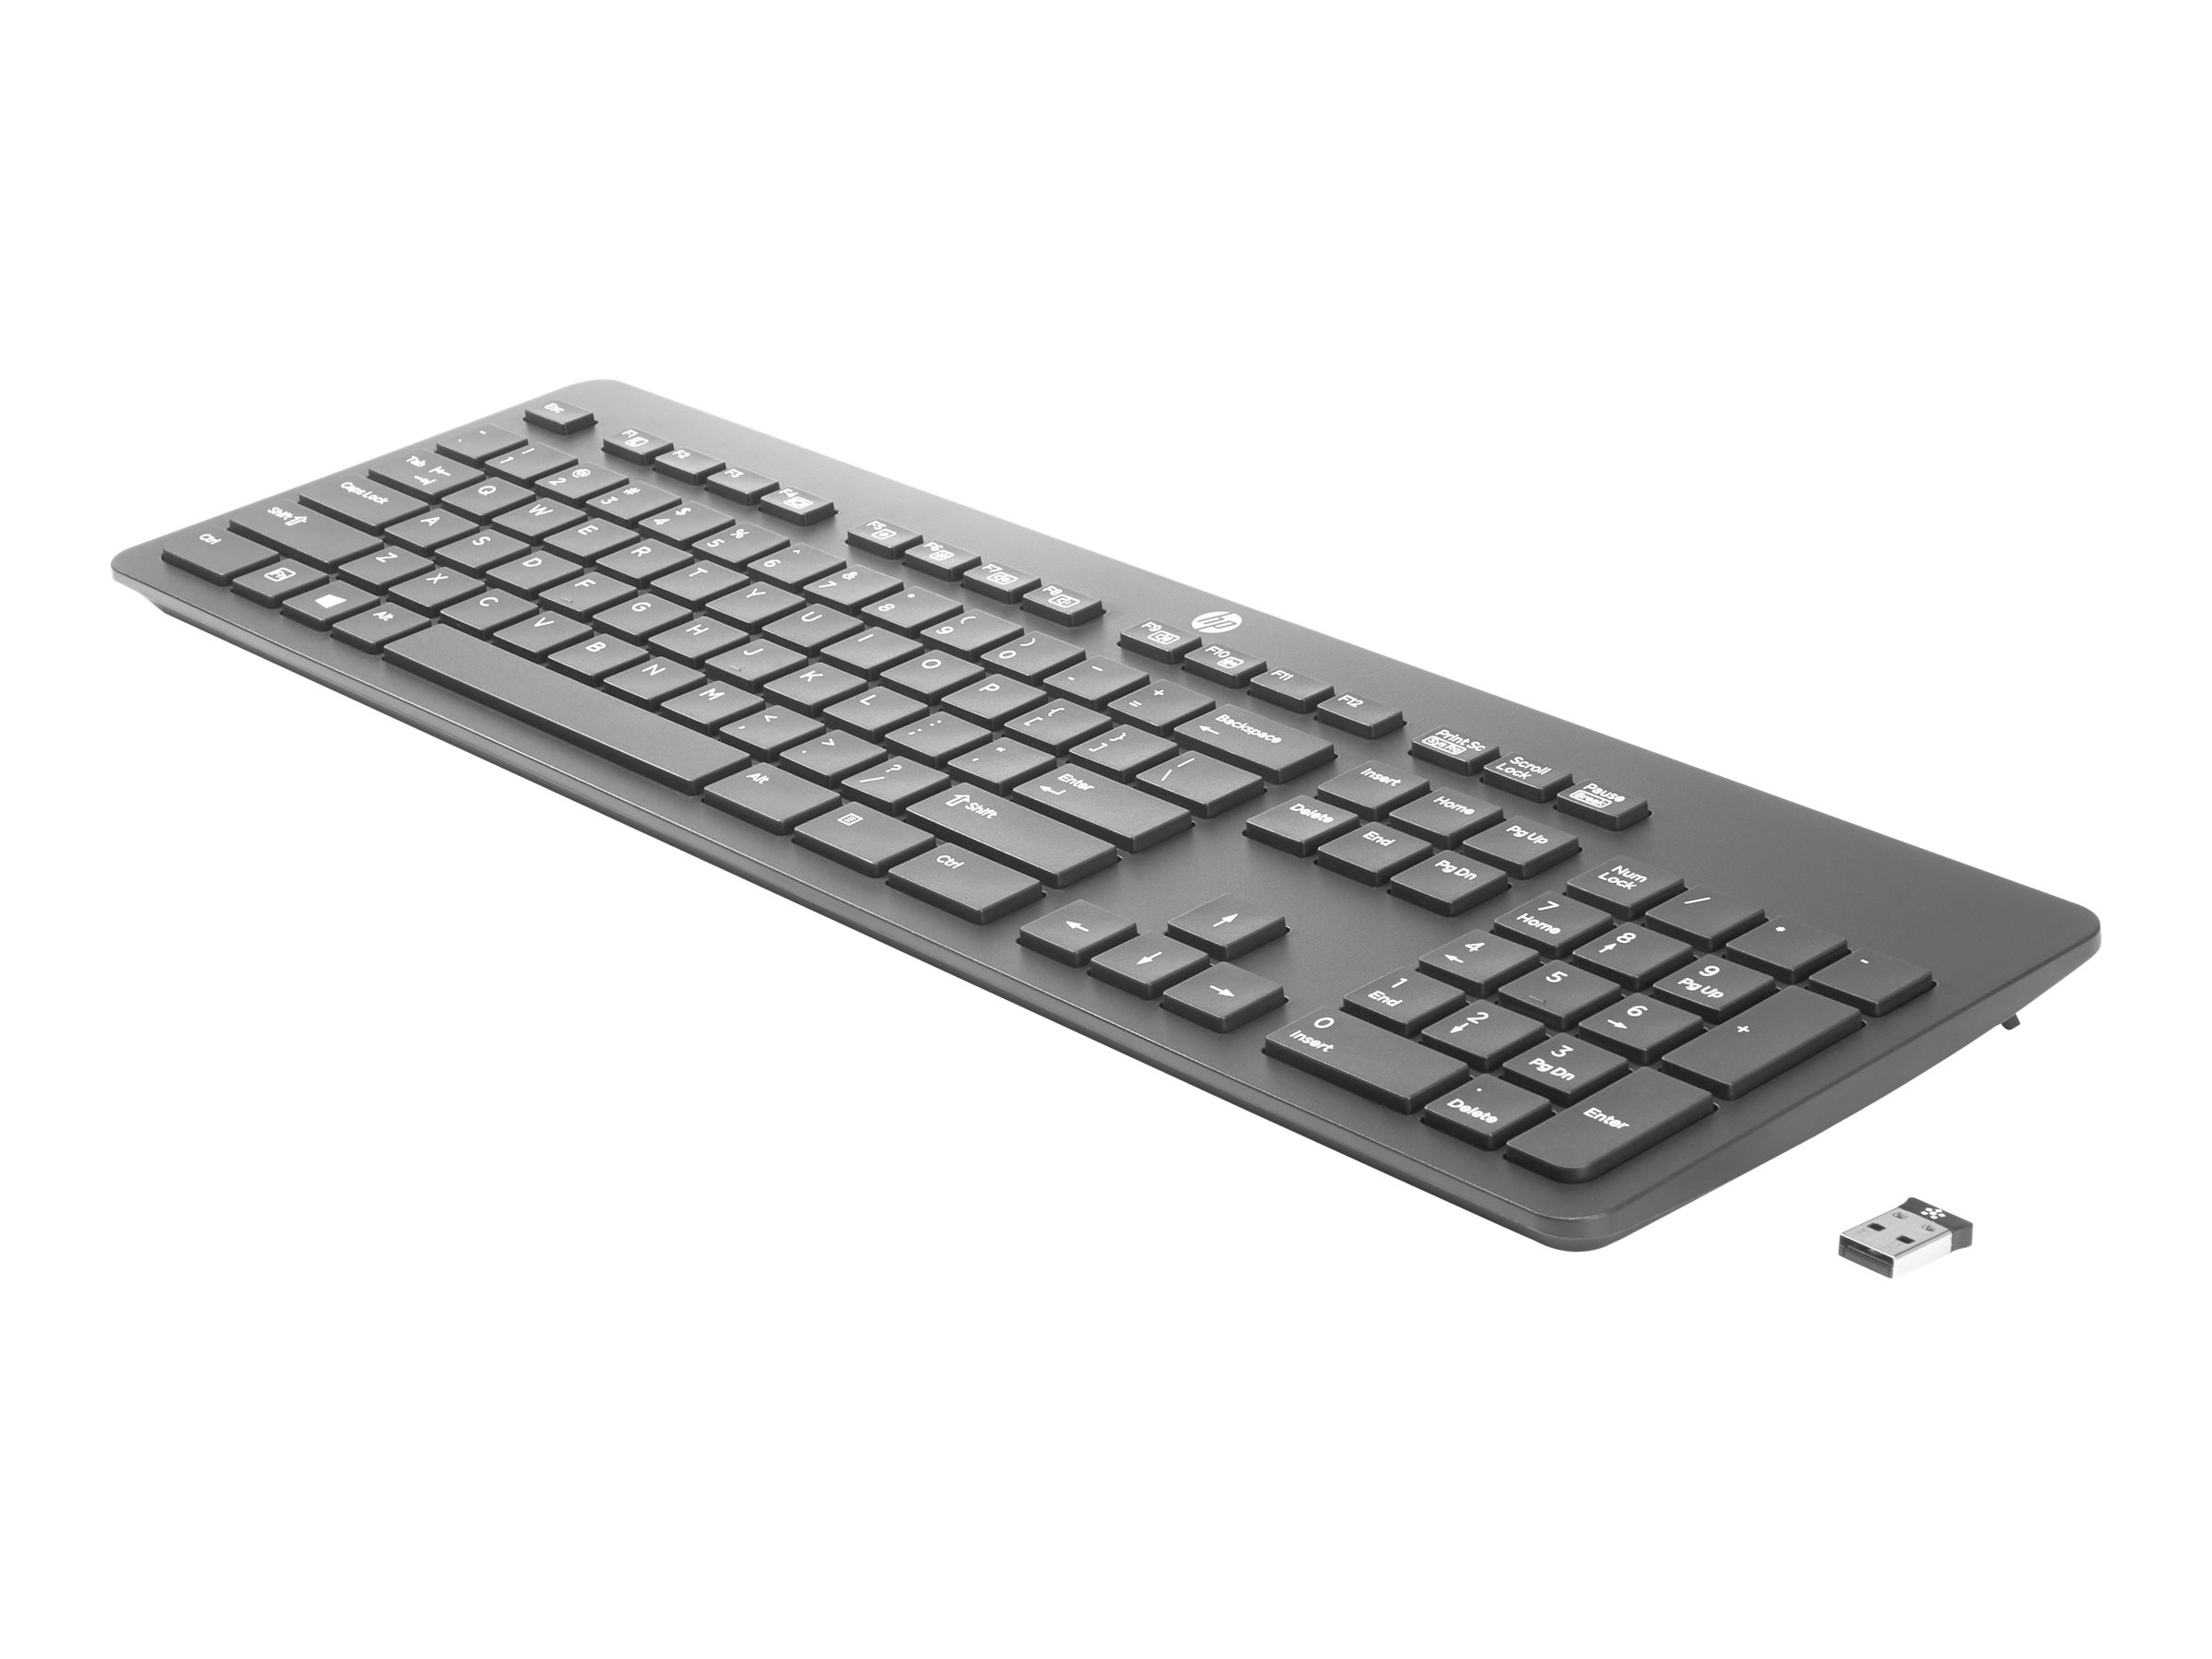 HP Link-5 - keyboard